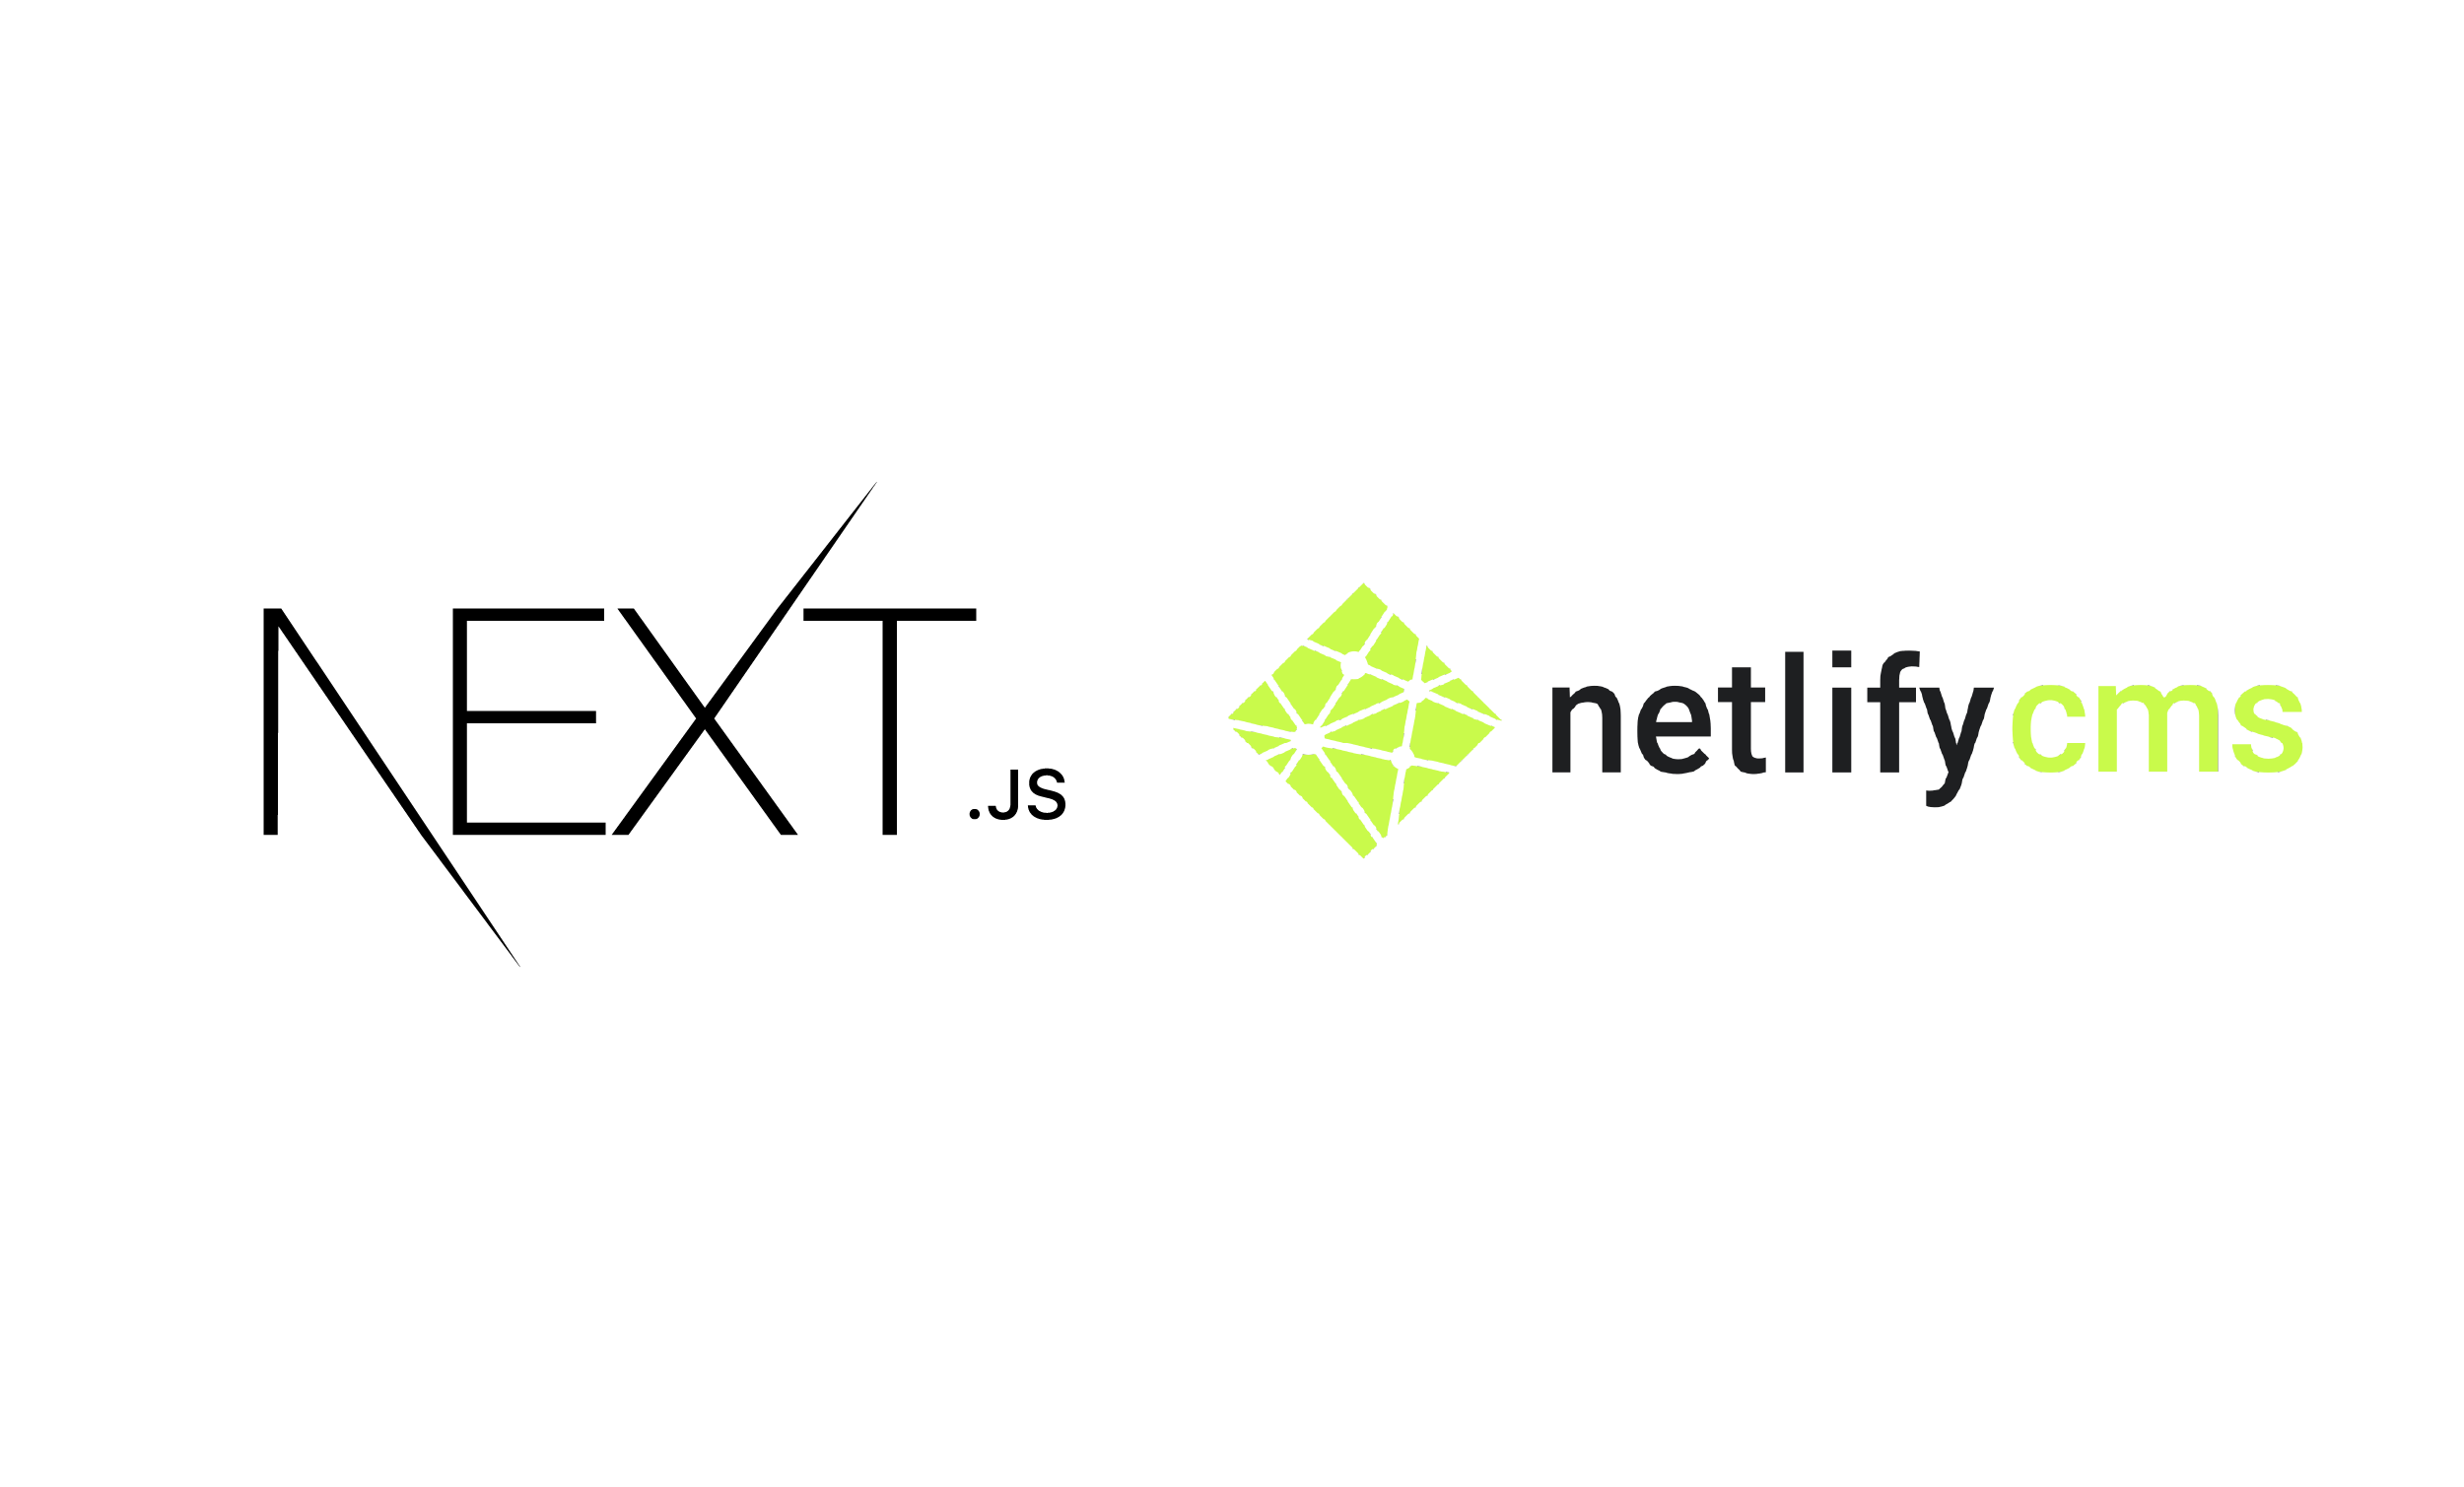 /img/next-netlify.png